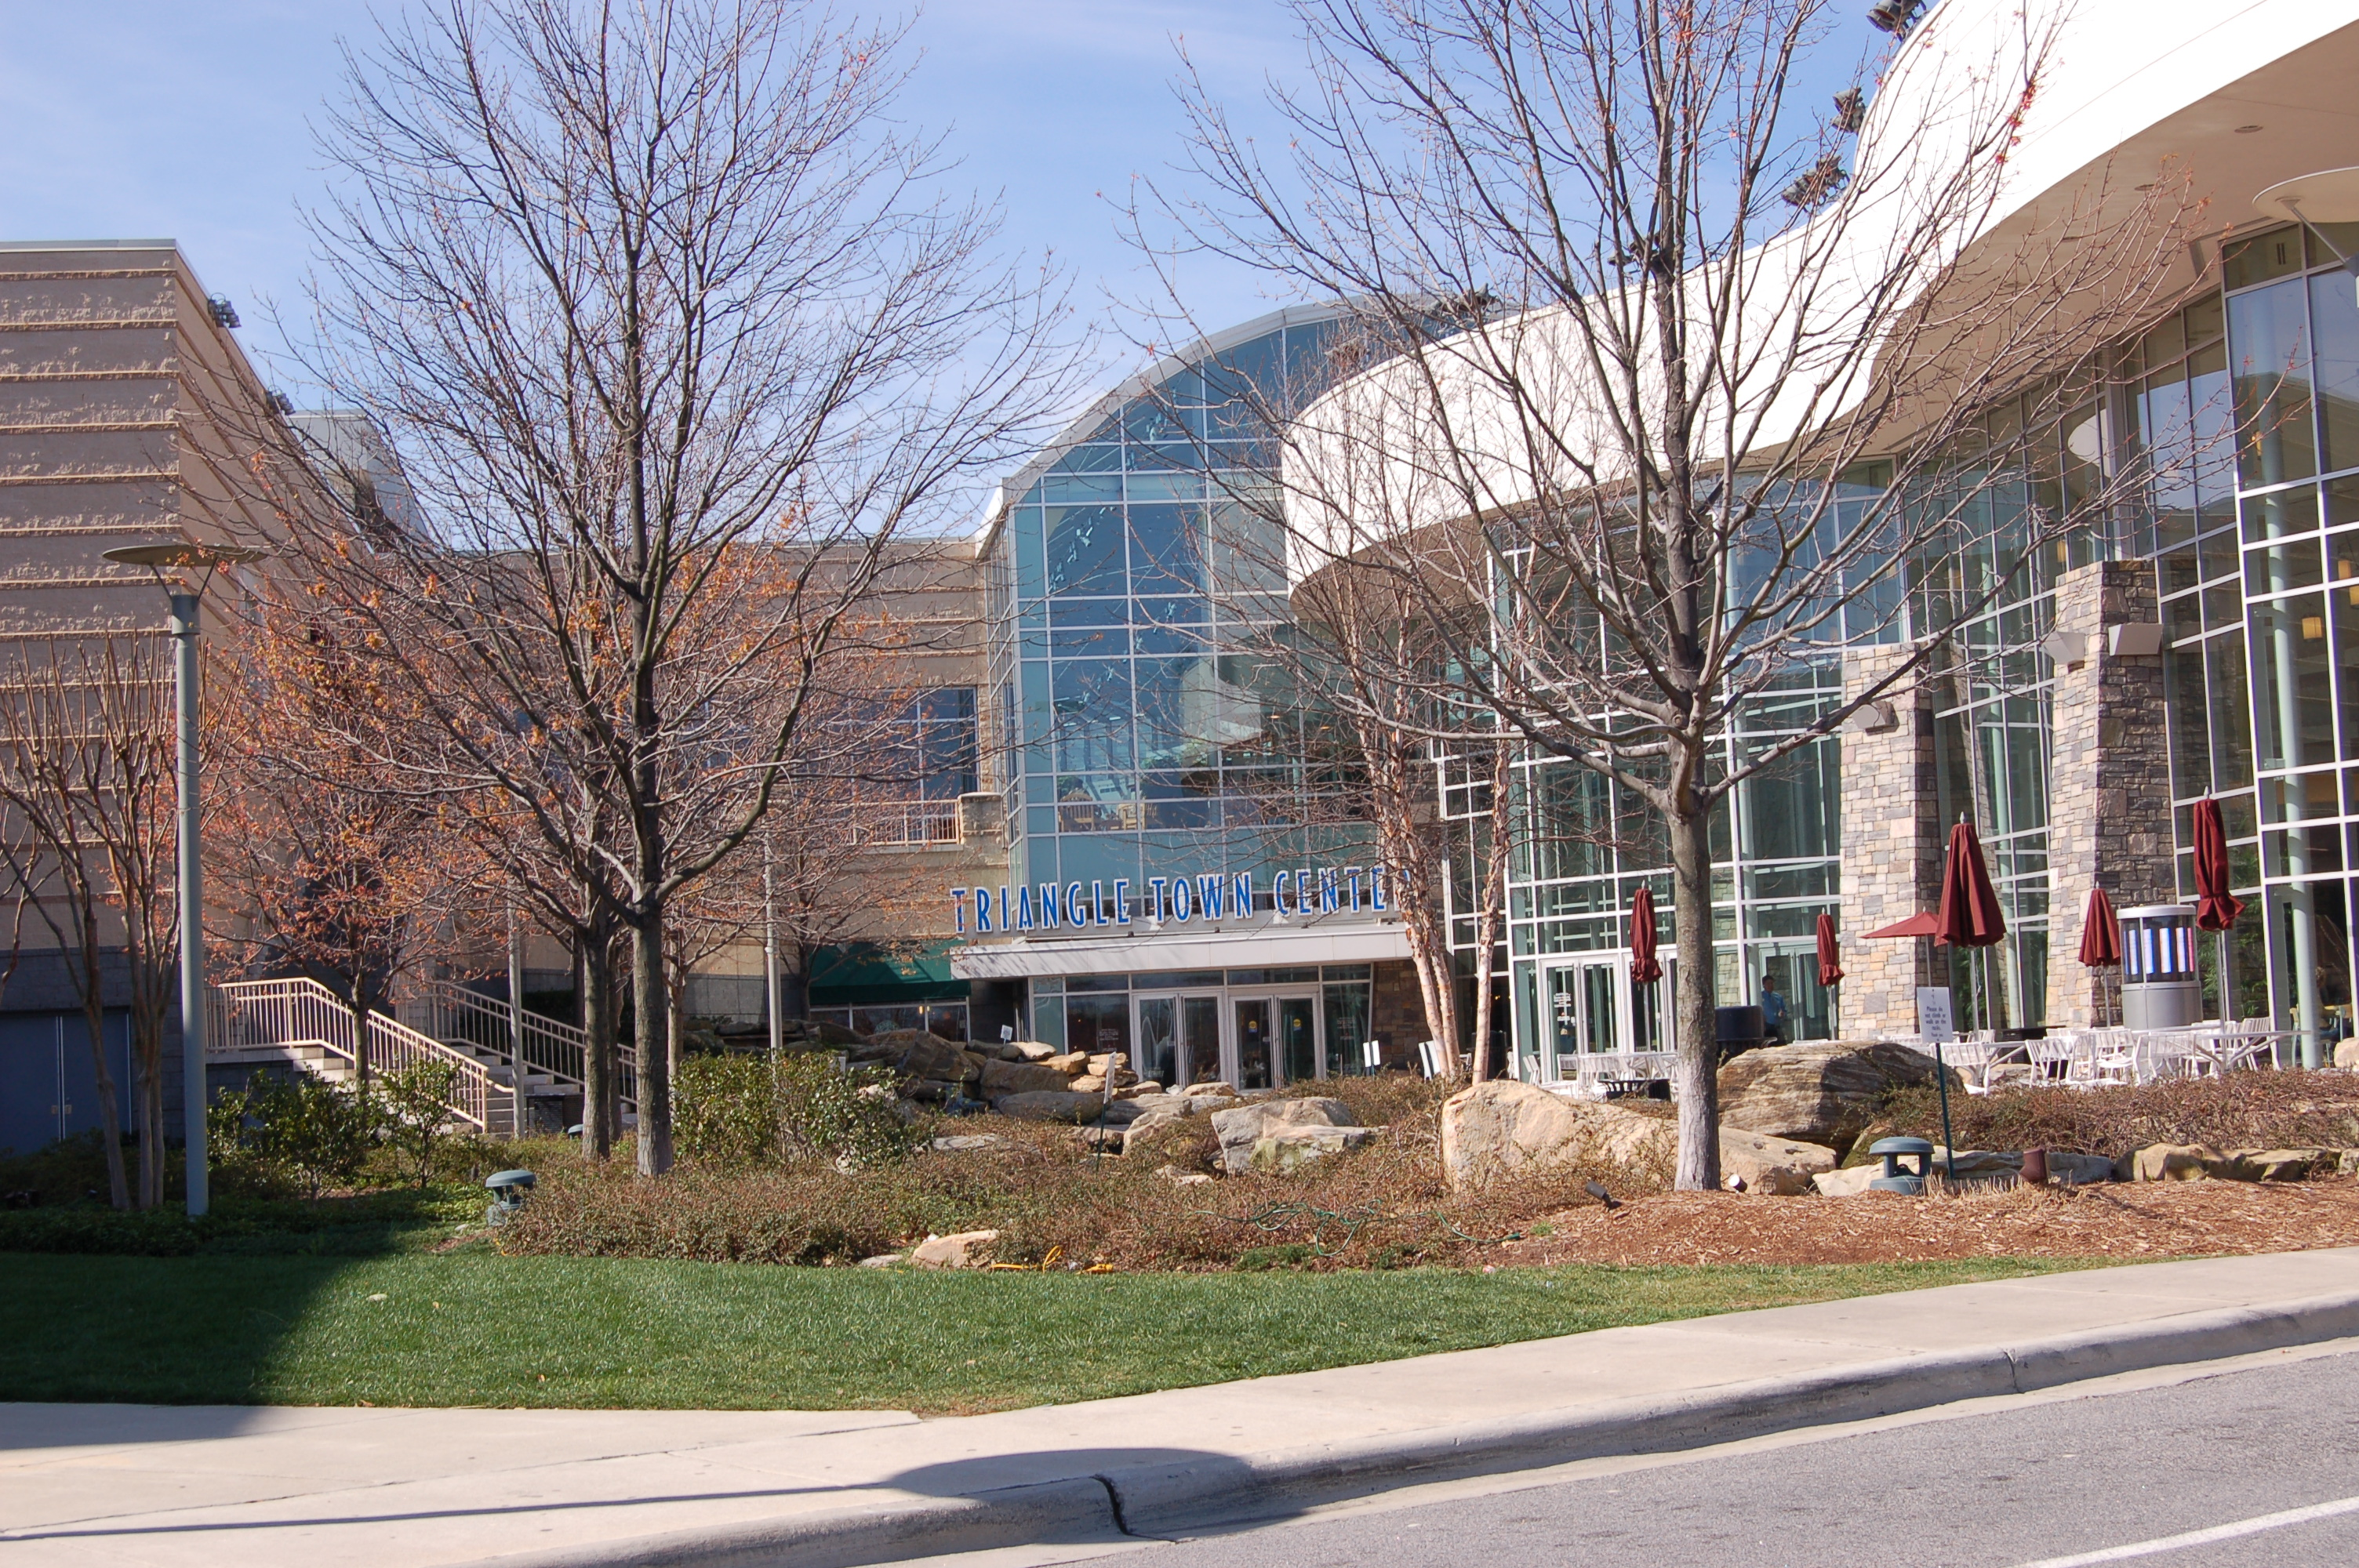 File:Triangle-Town-Center-20080321.jpeg - Wikimedia Commonstriangle town